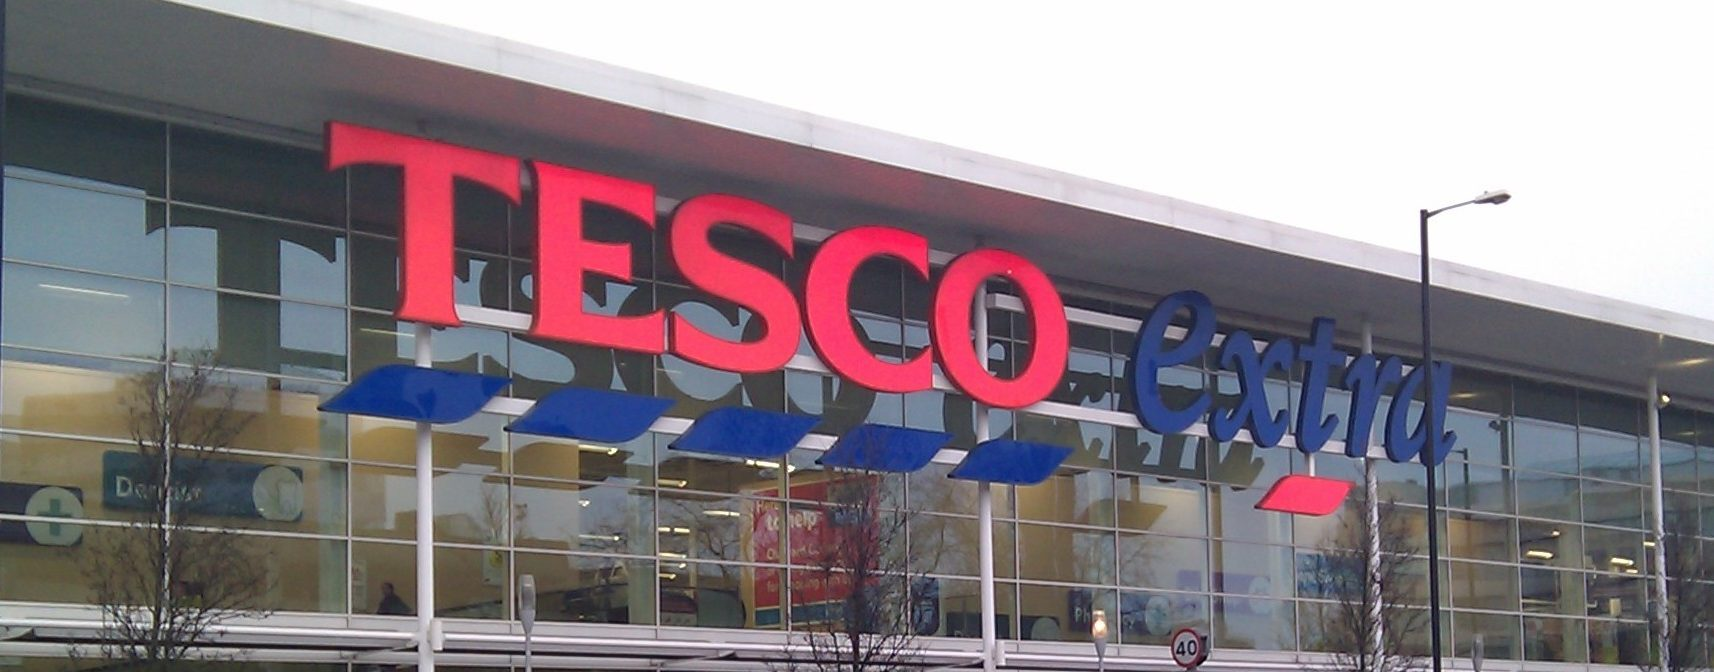 Every single toy sold at Tesco goes into the sale today